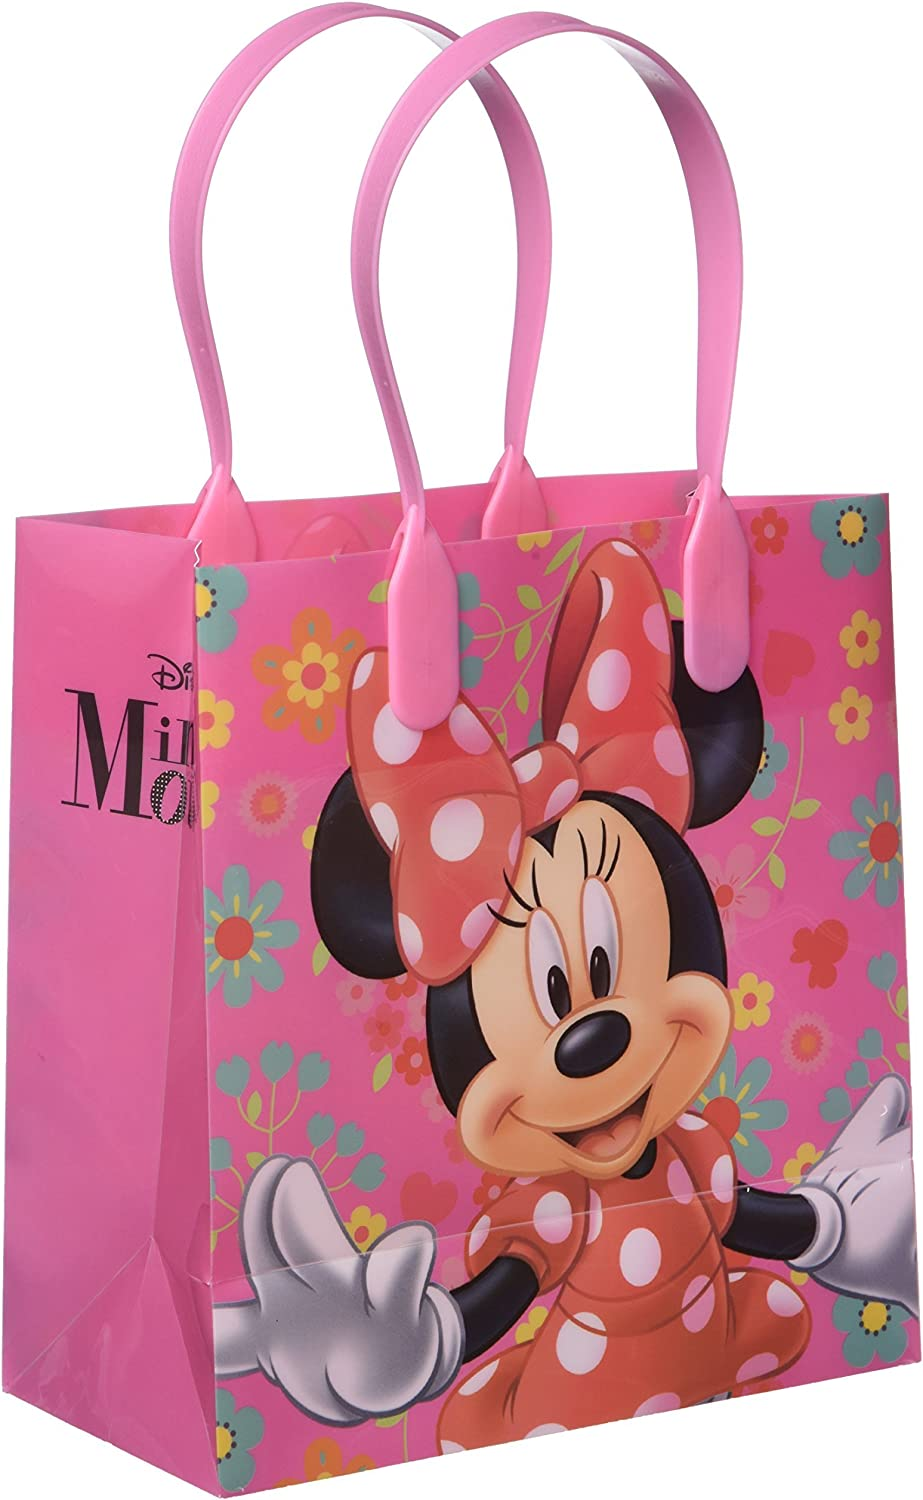 Disney Minnie Mouse Party Favor Goodie Gift Bag  6  Small Size (12 Packs) by Disney